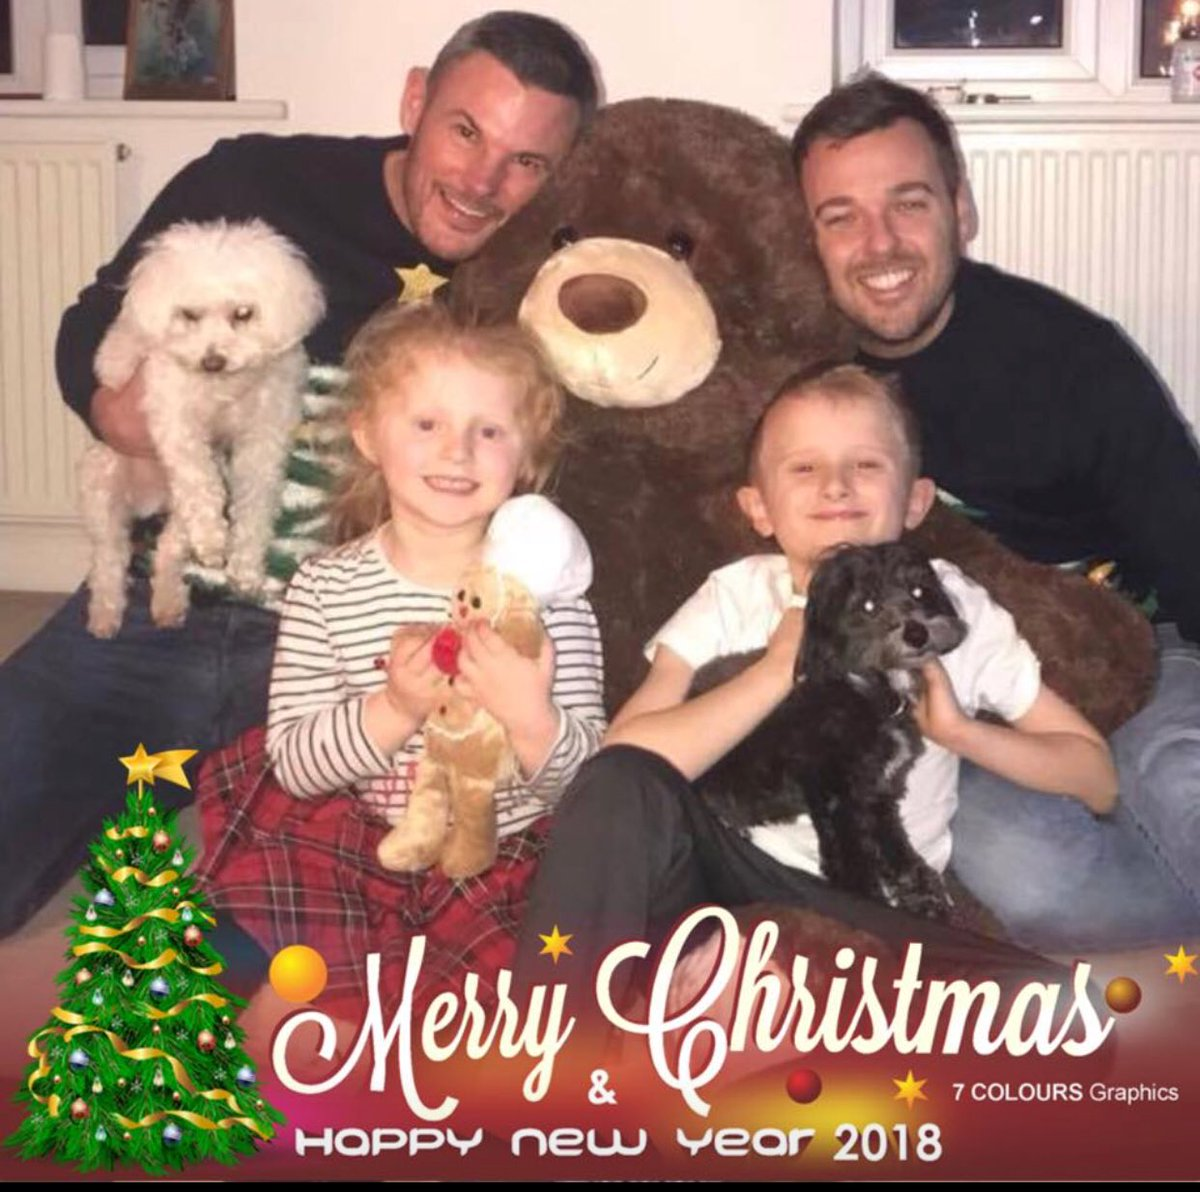 carl austin behan on twitter so from myself si_austinbehan scrappy_oleg may we wish you all a very merry and happy christmas xxx here is to the - Christmas By Myself This Year